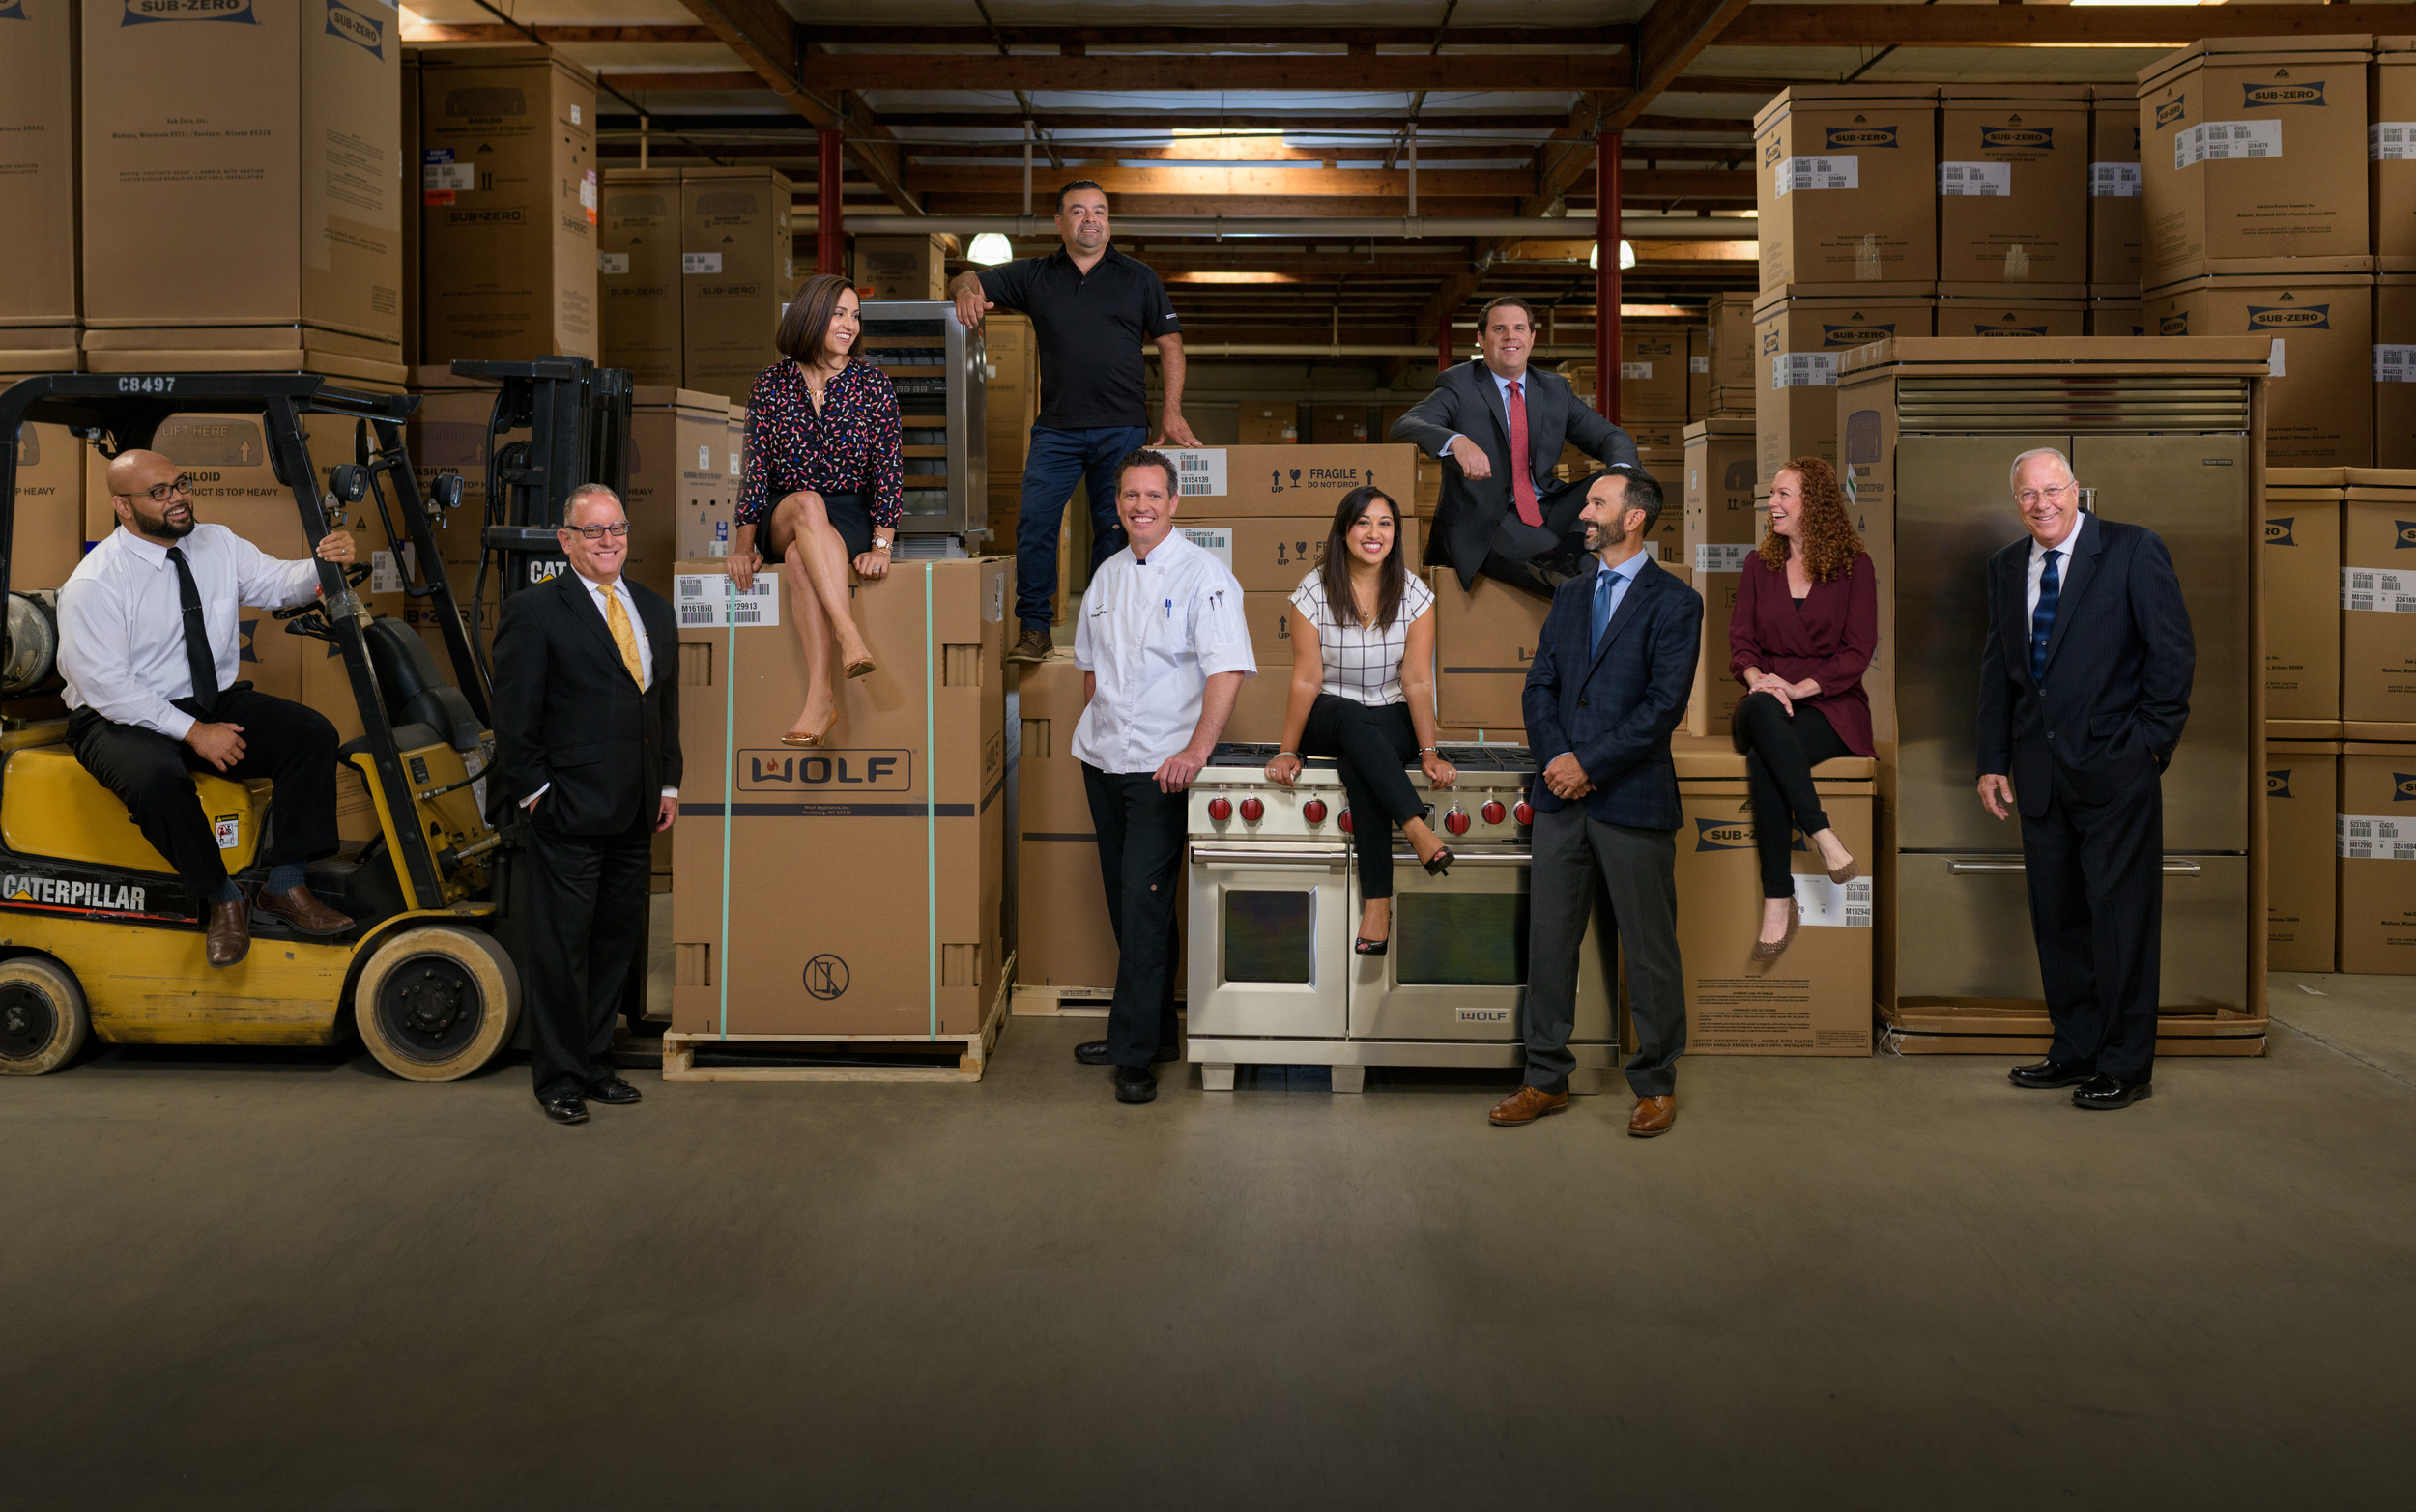 Final photoshop composite image of 10 business executives after hundreds of individually lit photos.